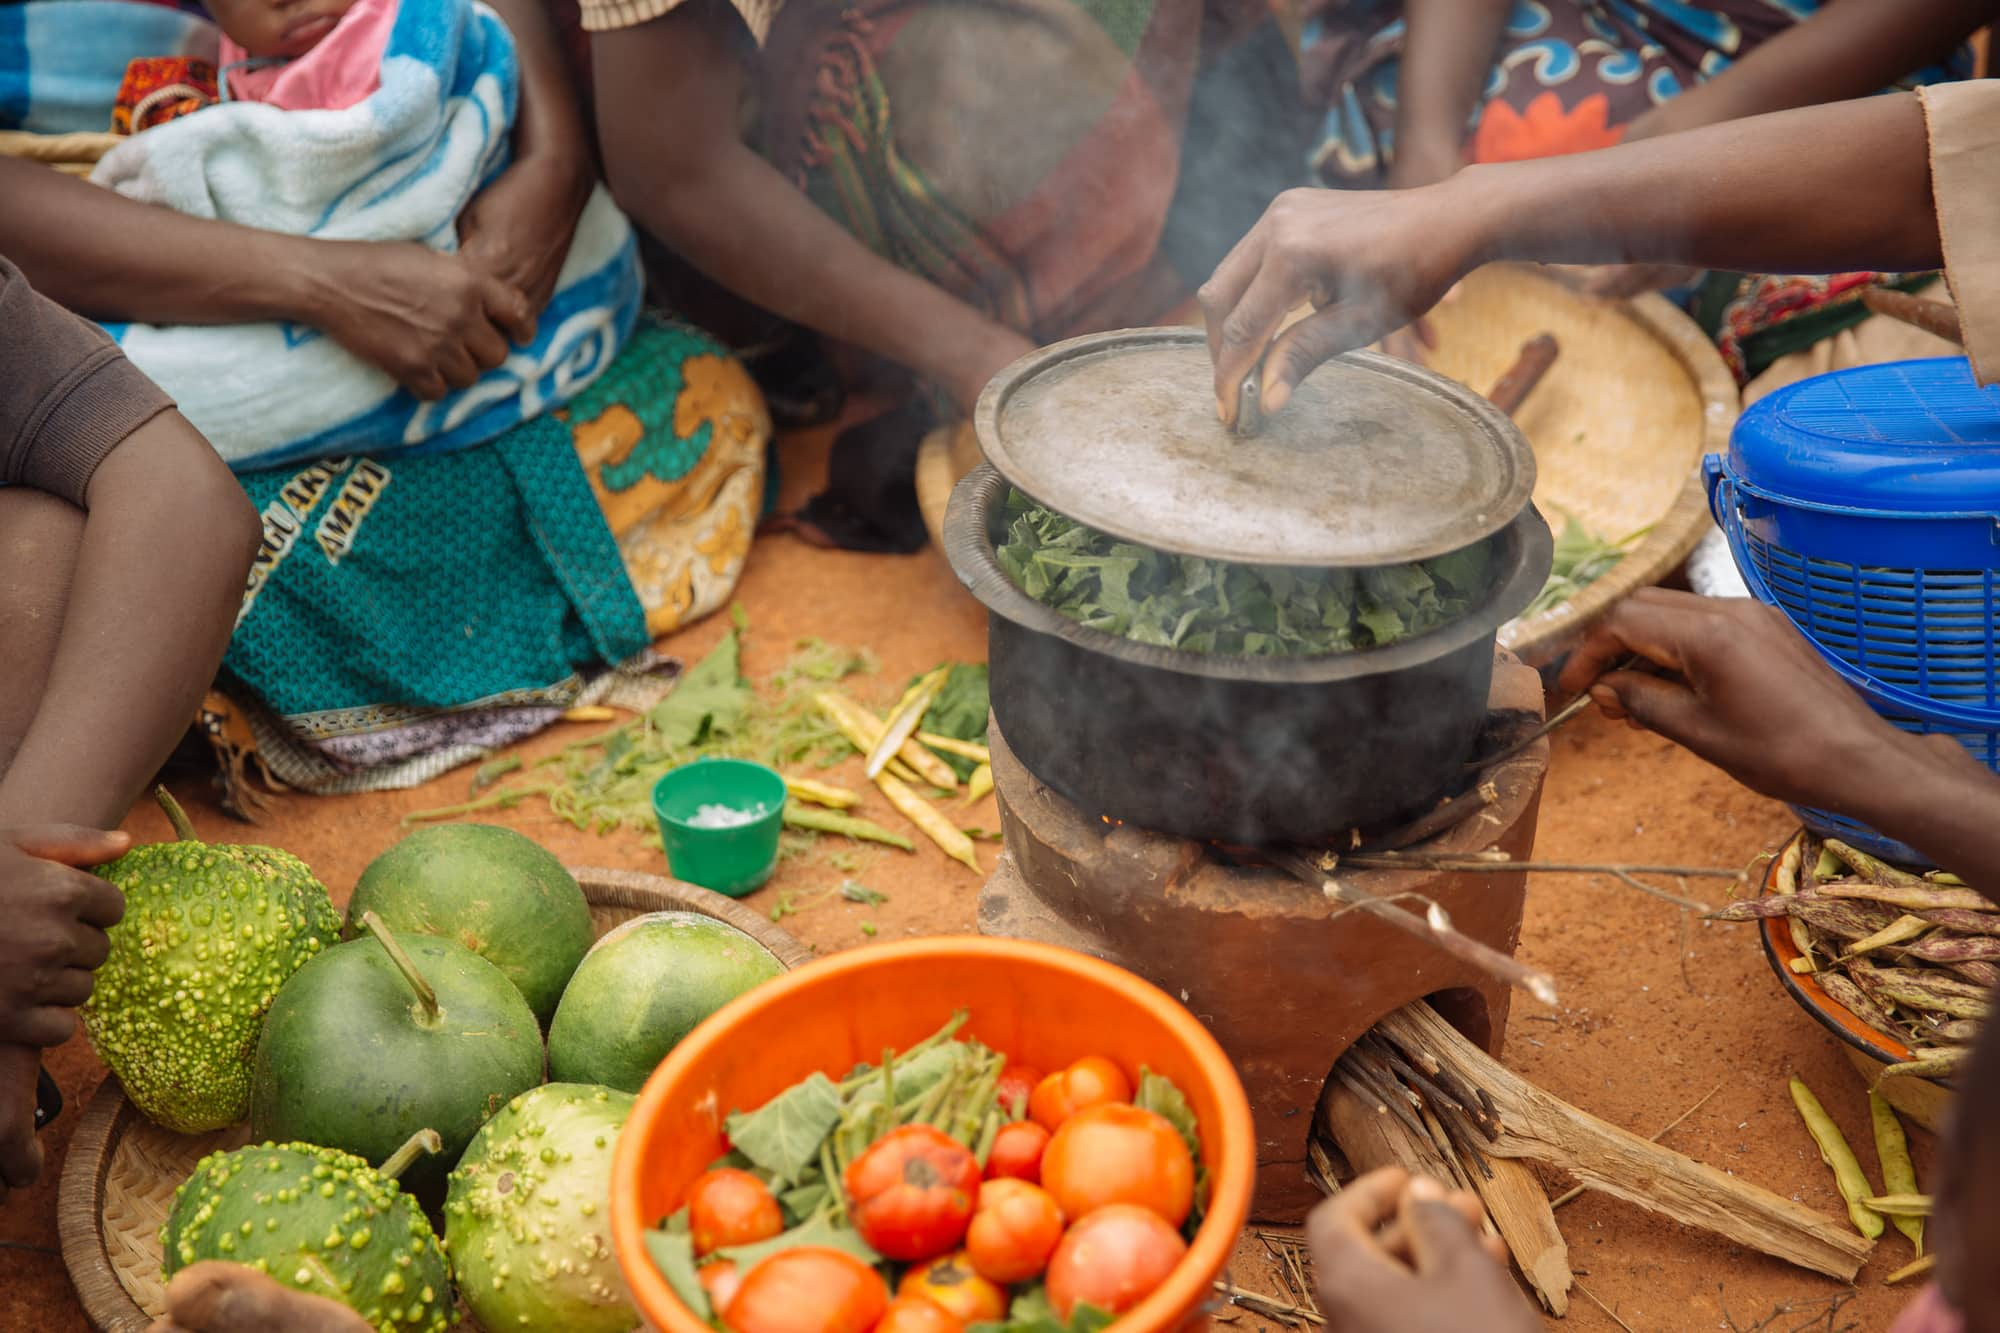 Sustainable Healthy Diets through Food Systems Transformation (SHiFT)